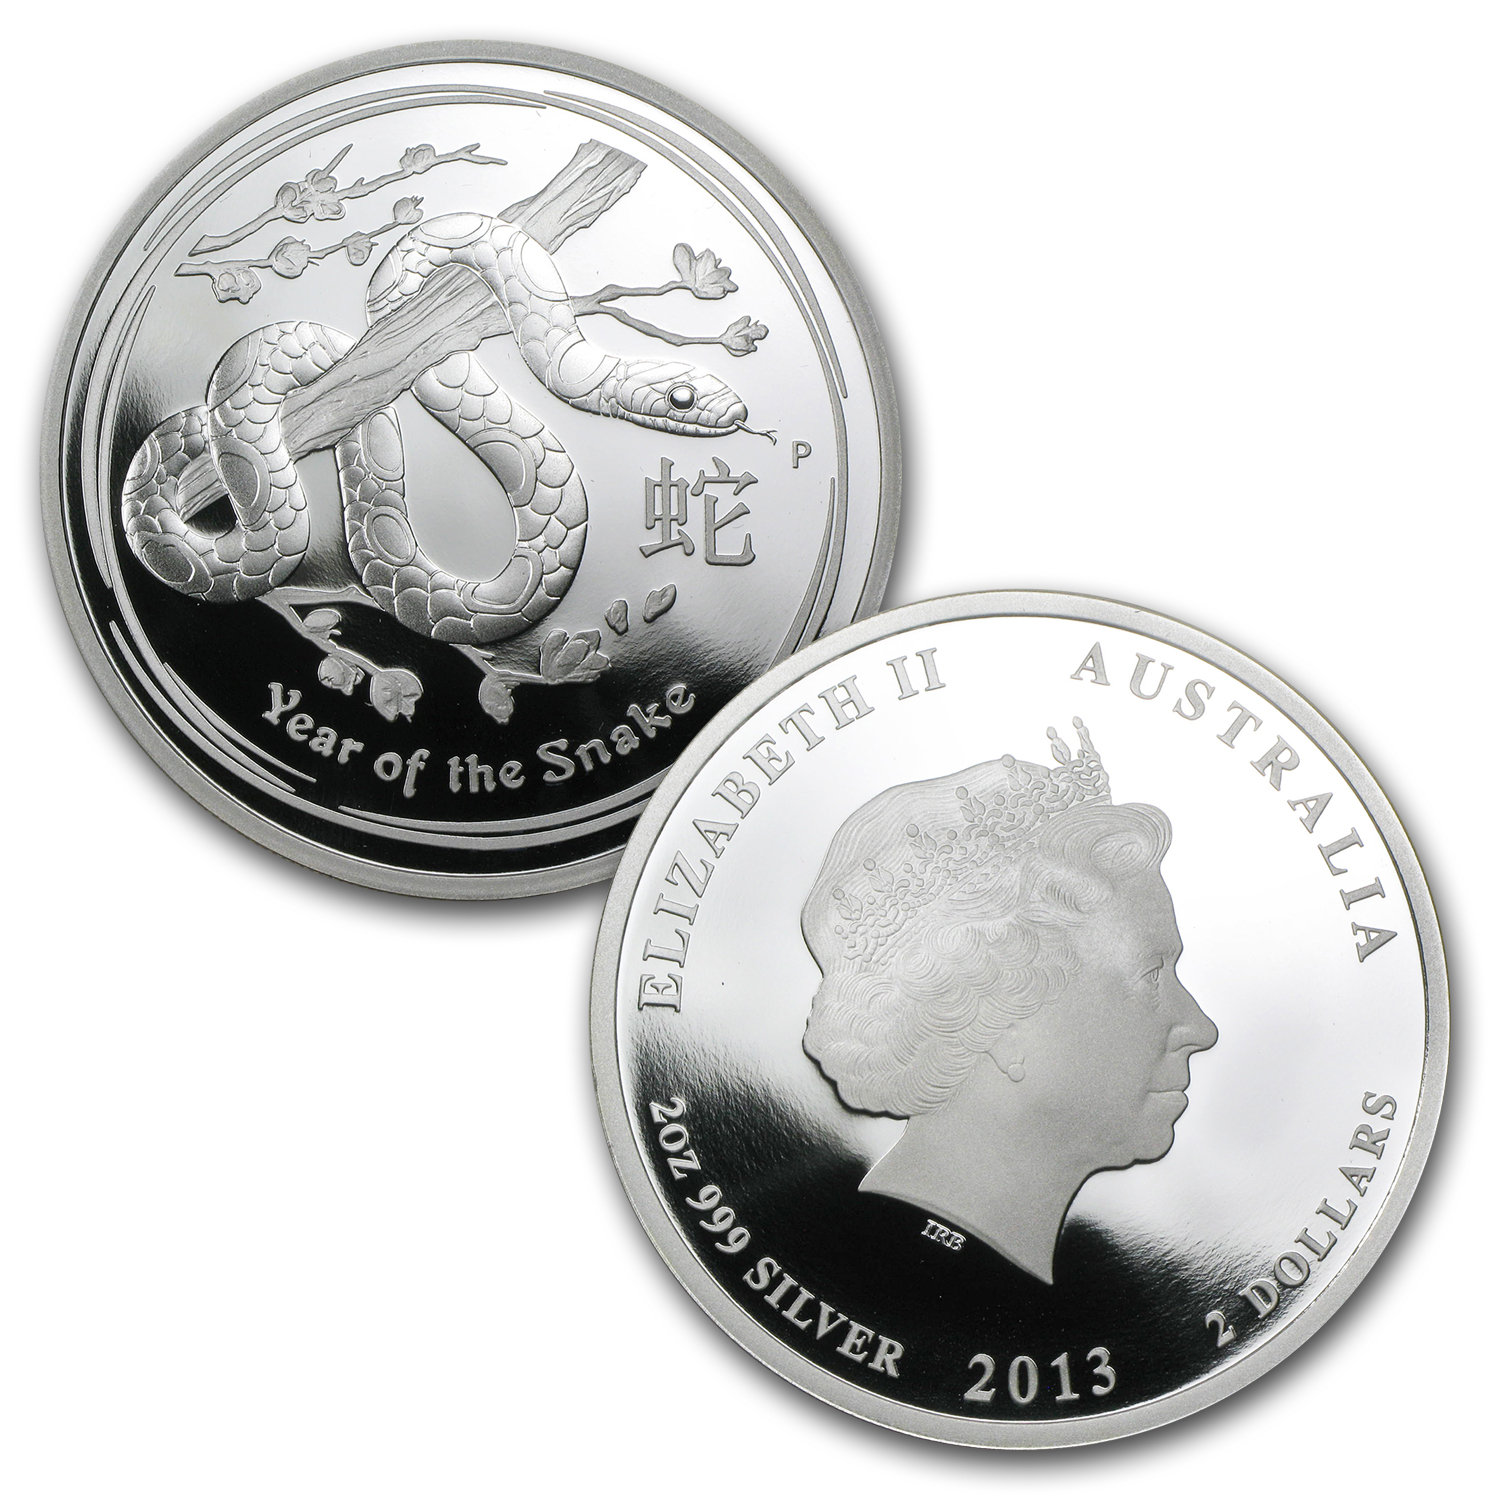 2013 Year of the Snake - Silver 3-Coin Proof Set - (Series II)